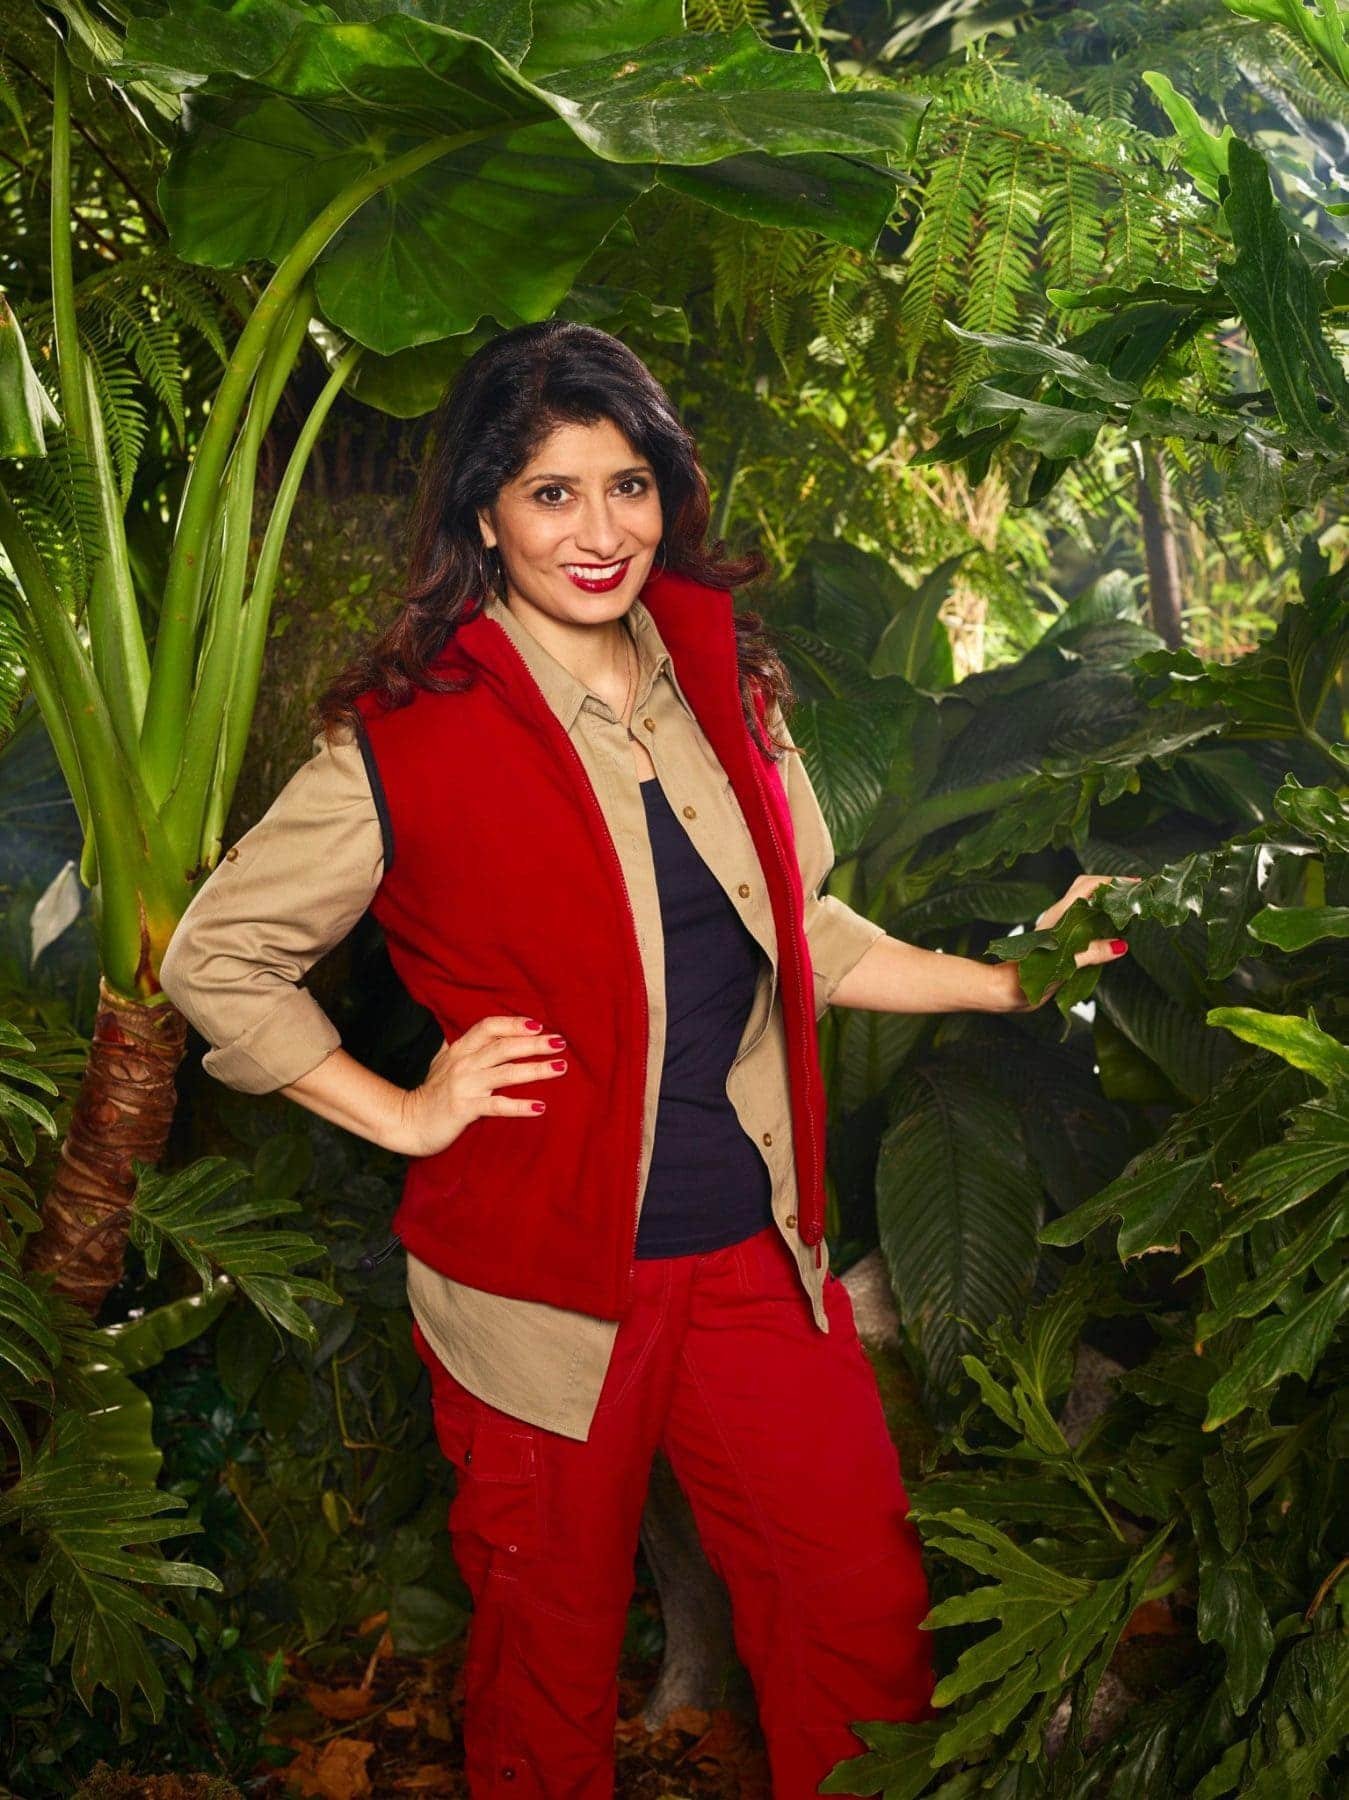 Vegan Comic Shappi Korsandi On I'm A Celebrity 1